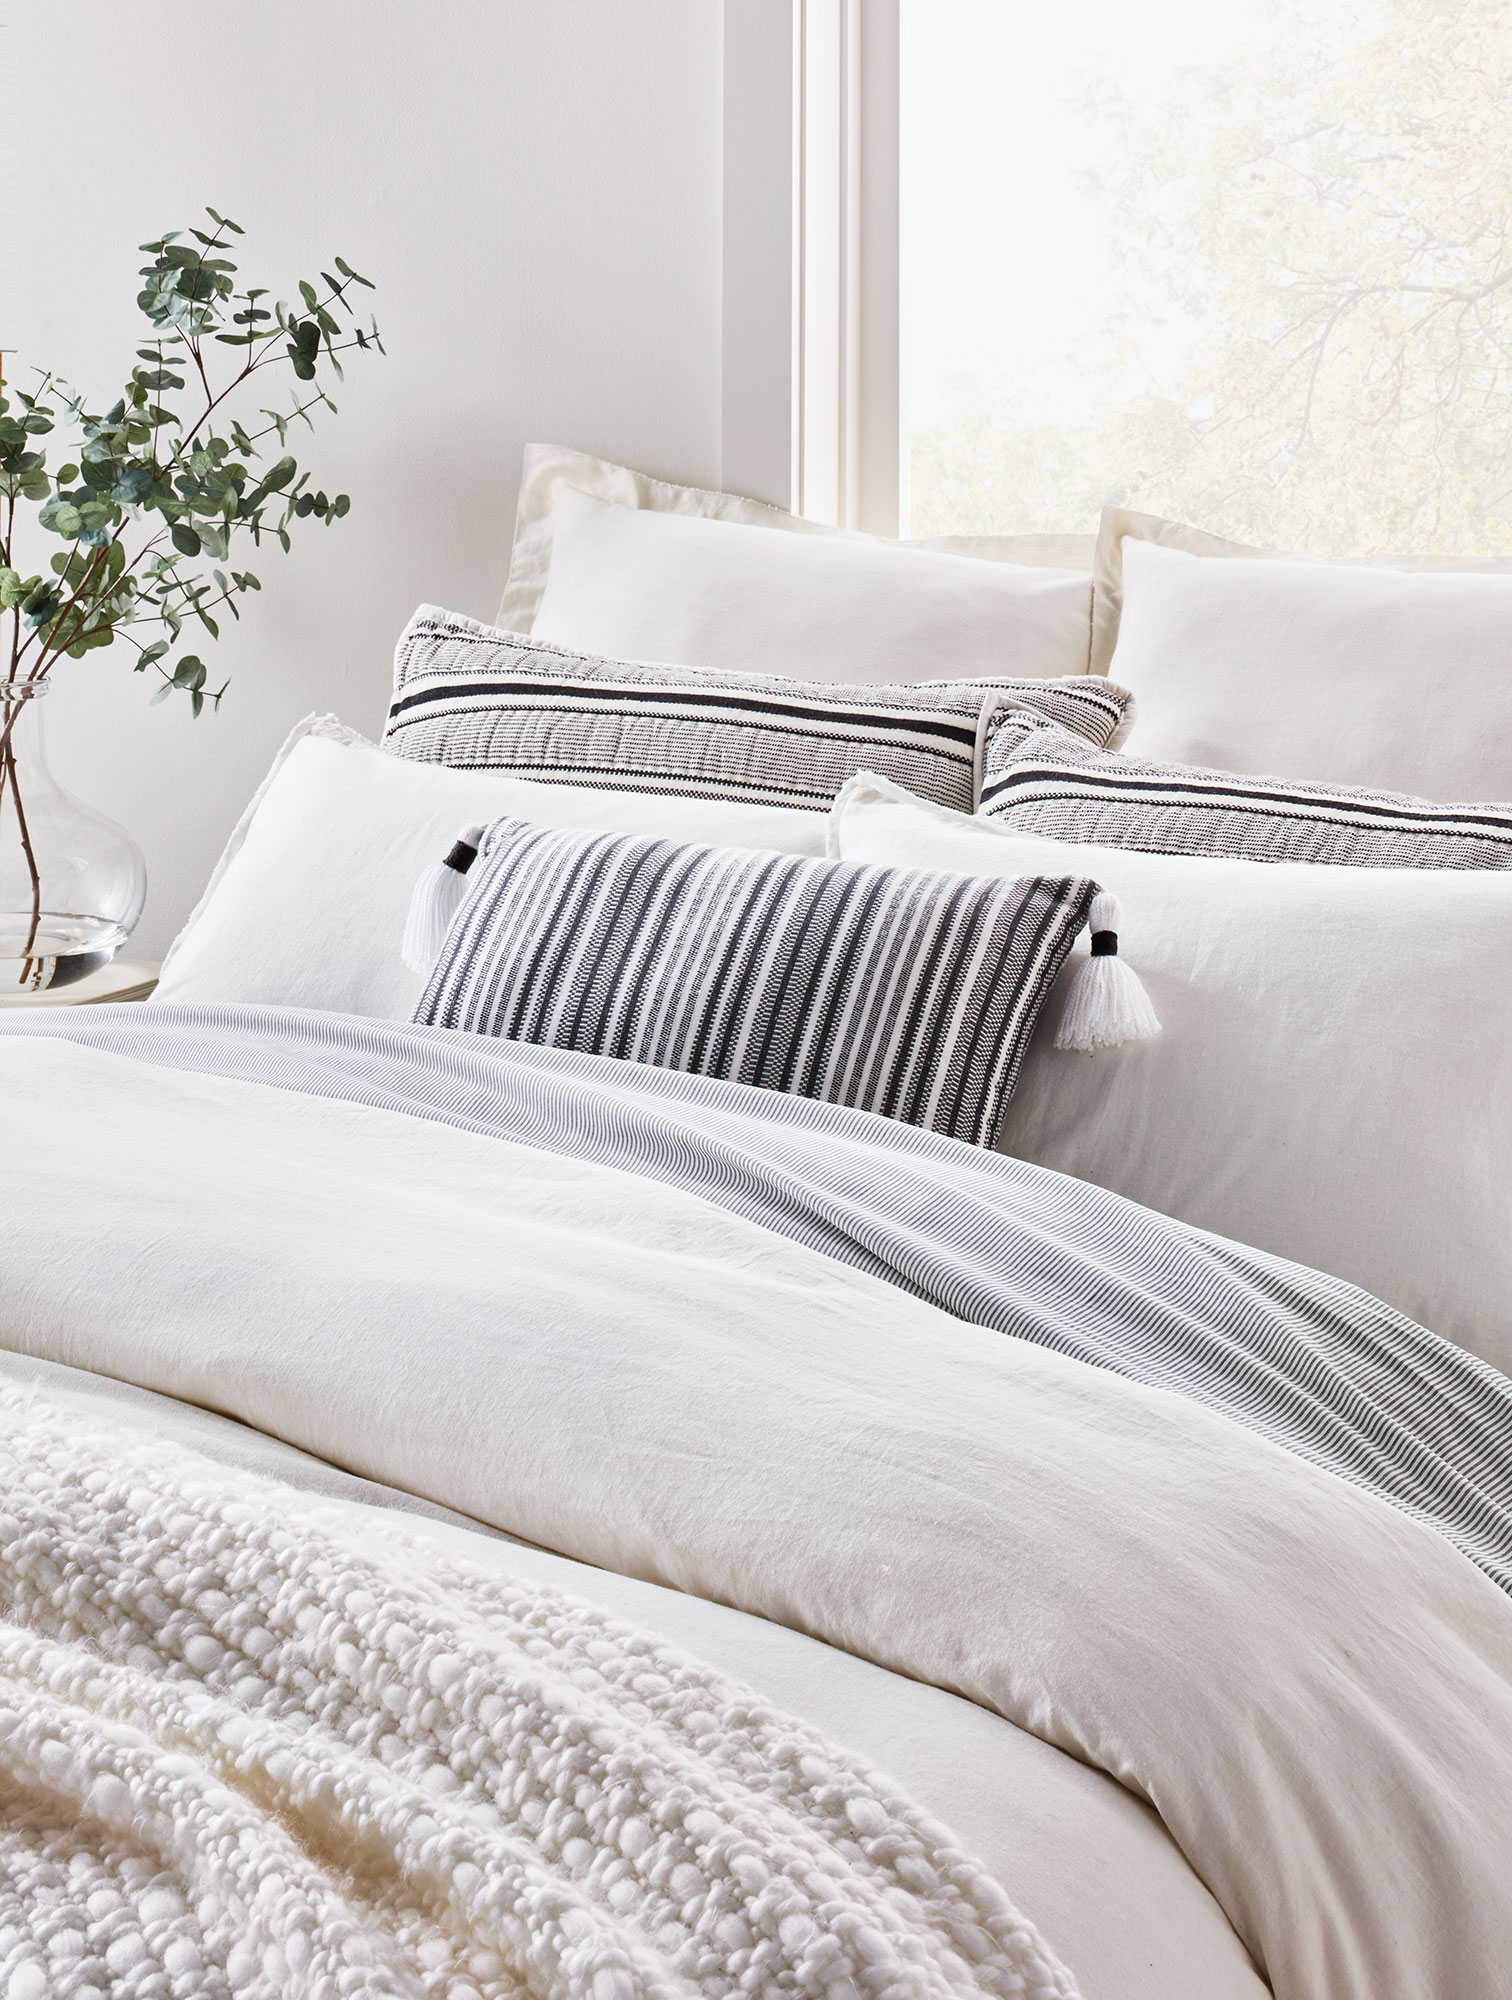 Joanna Gaines Is Launching a Bedding Line at Target! Get a Sneak Peek at Her New Collection joanna-gaines-3-1